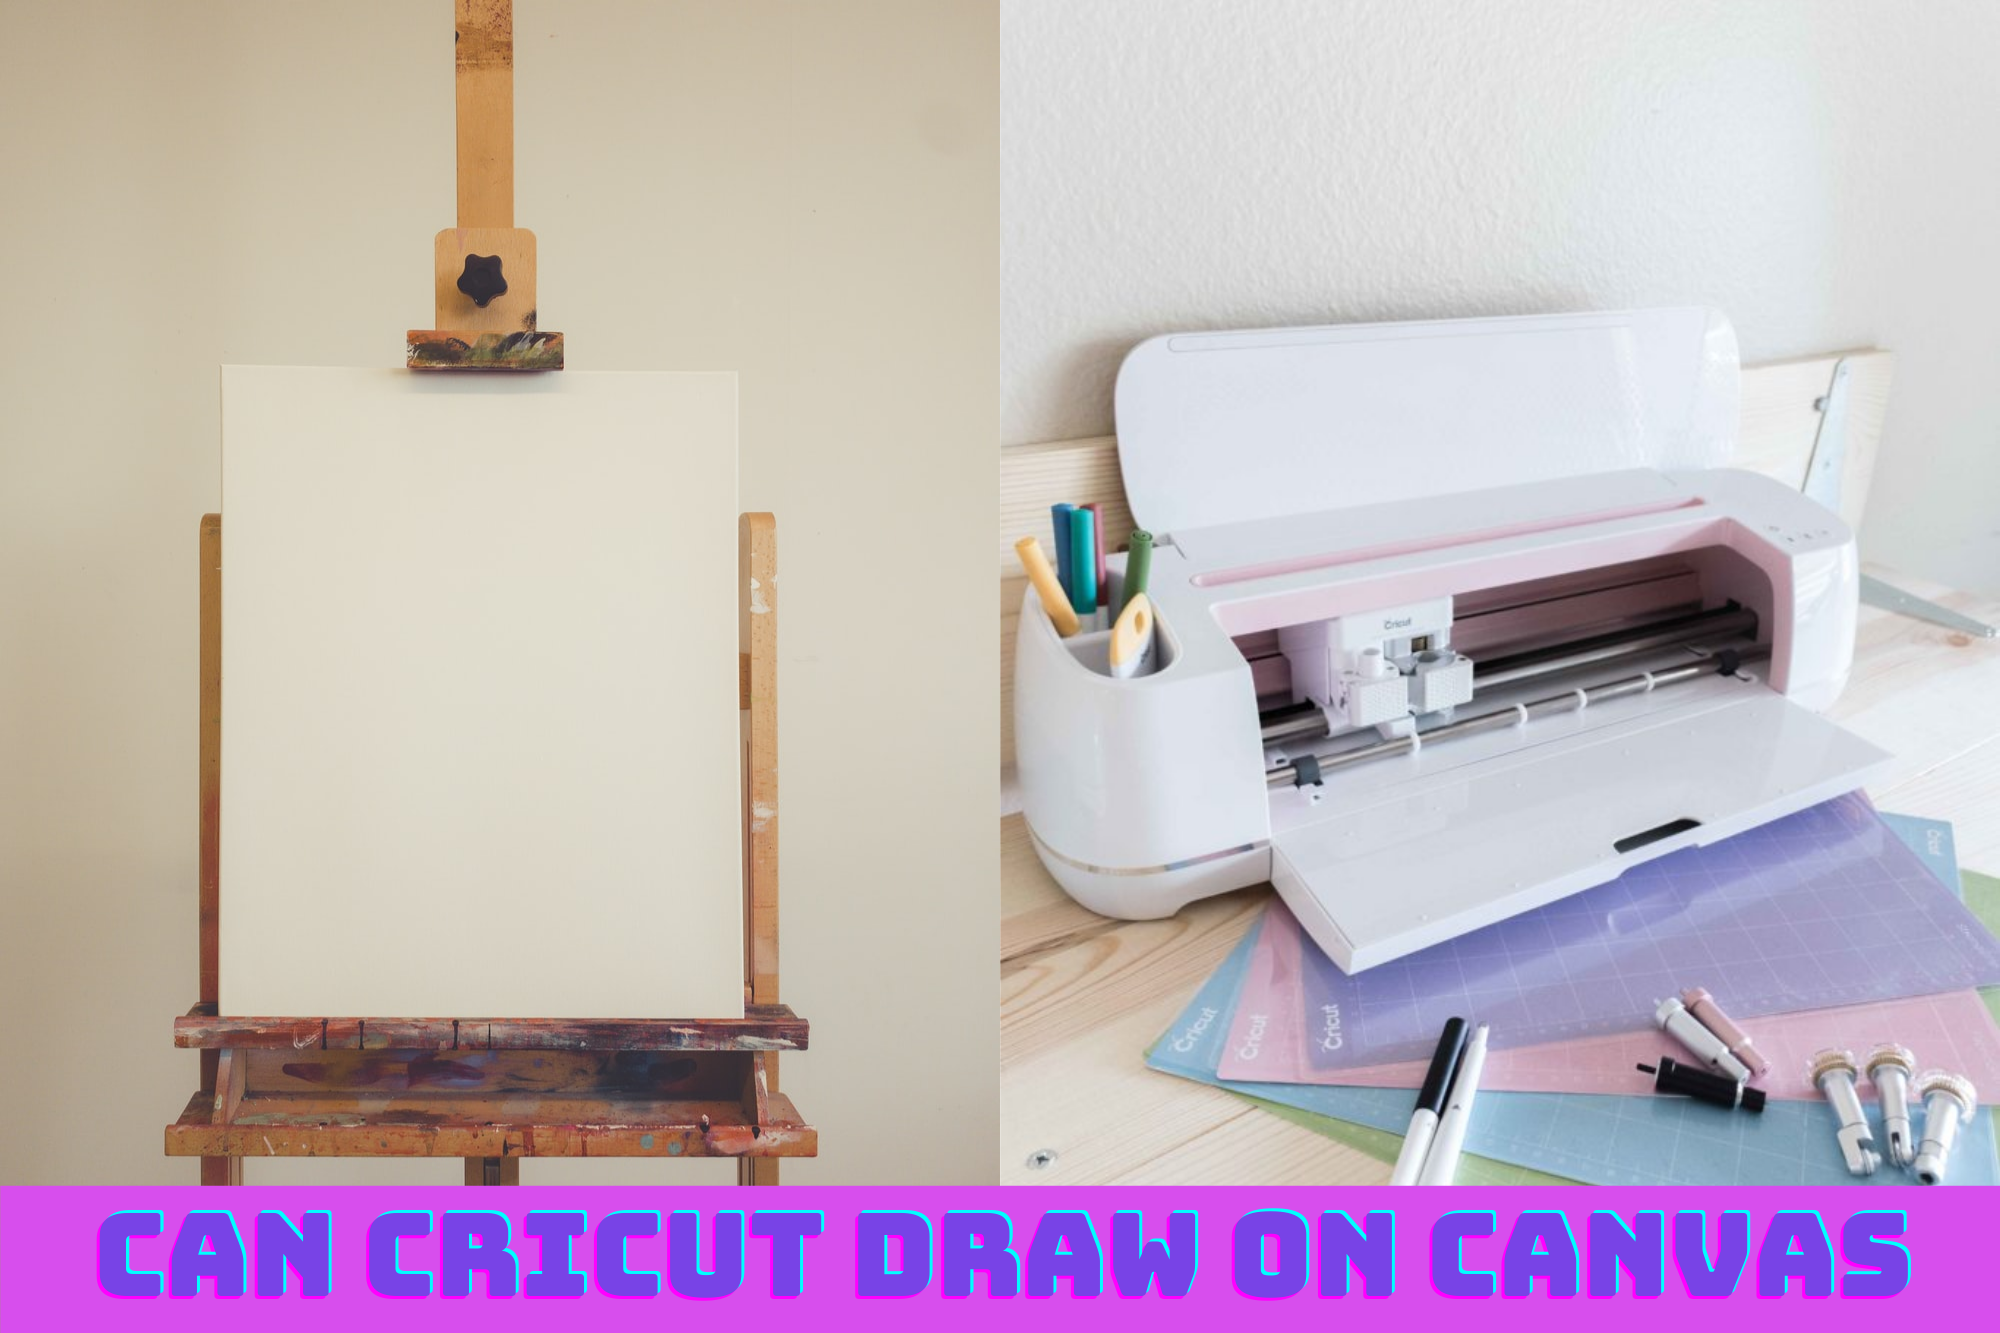 Can Cricut Draw On Canvas? What Systems Are Present In A Cricut? What Type Of Pens Can Be Used While Drawing With Cricut Machines On Canvas? What Variety Of Cricut Designs Can You Draw On Canvas? How Do I Make My Cricut Drawing On Canvas Perfect?